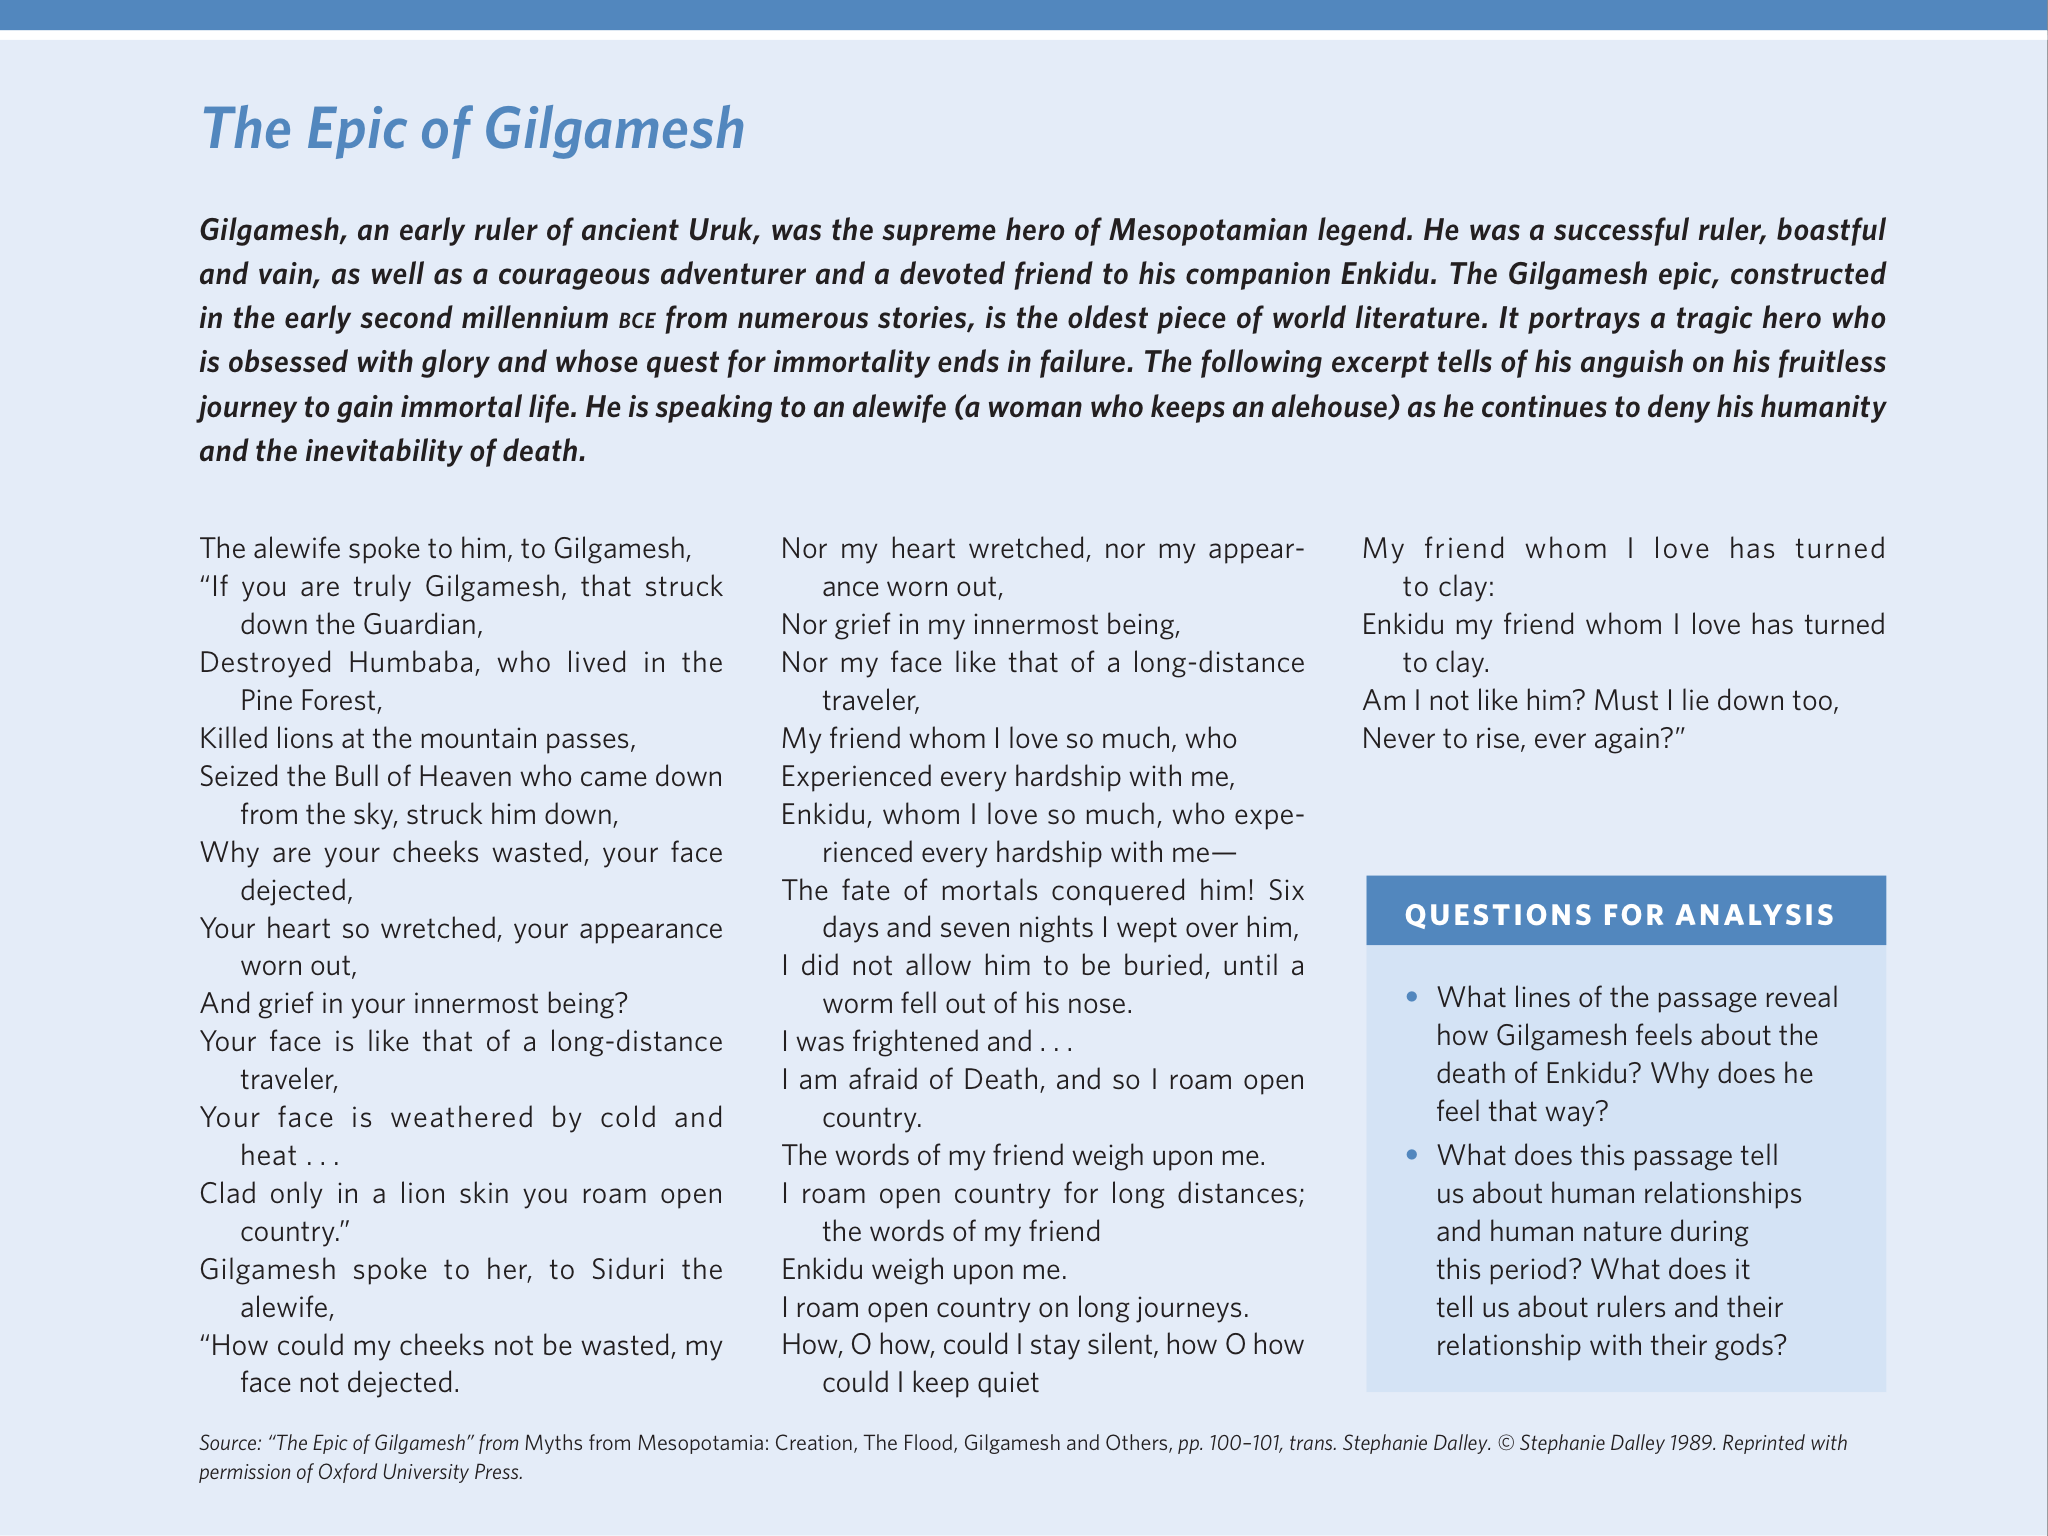 relationship between gilgamesh and enkidu essay